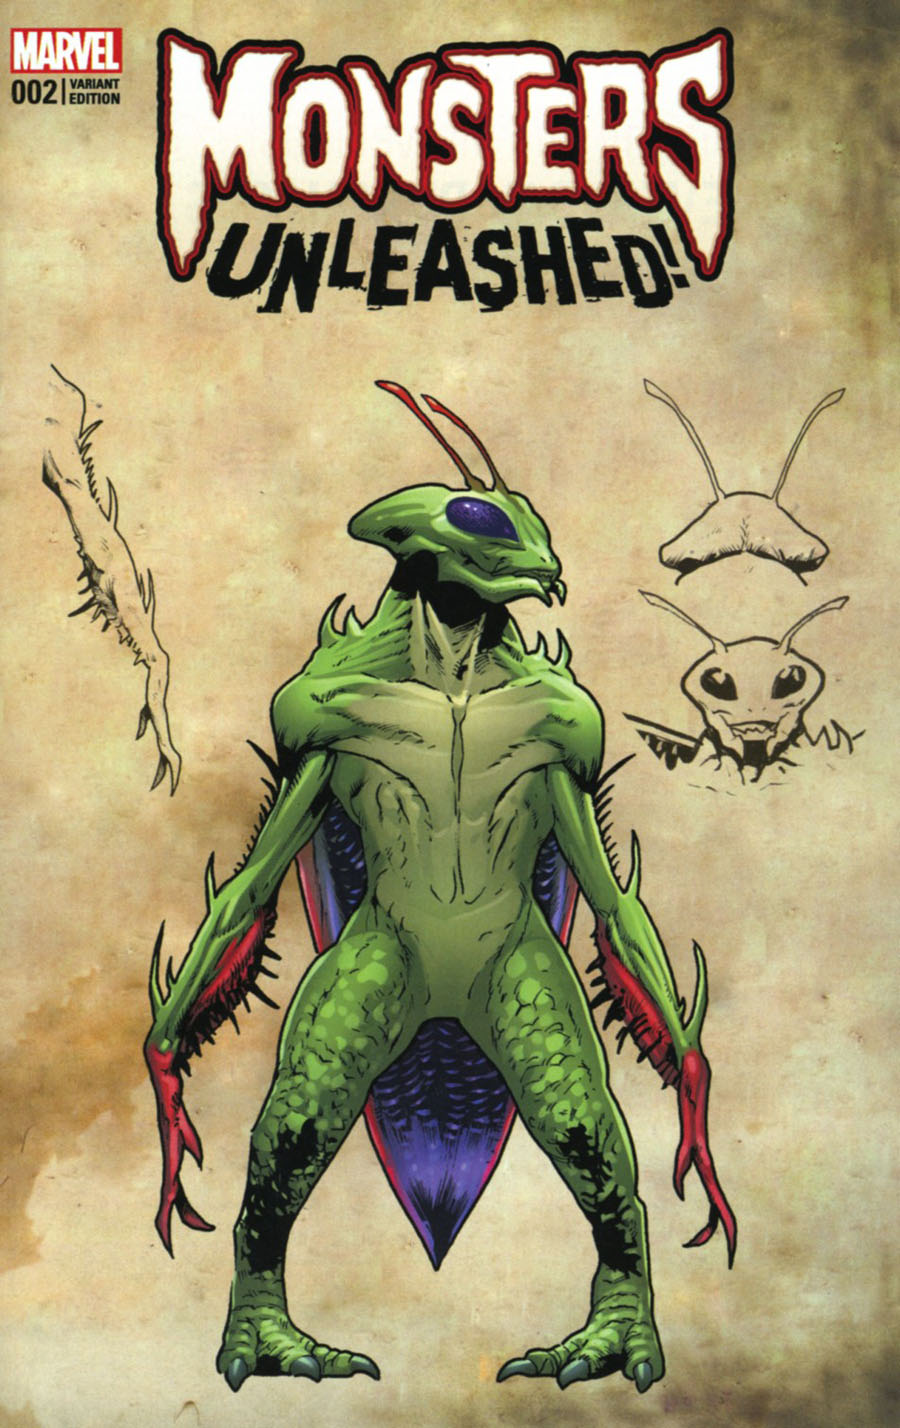 Monsters Unleashed #2 Cover D Variant Leinil Francis Yu Monster Cover